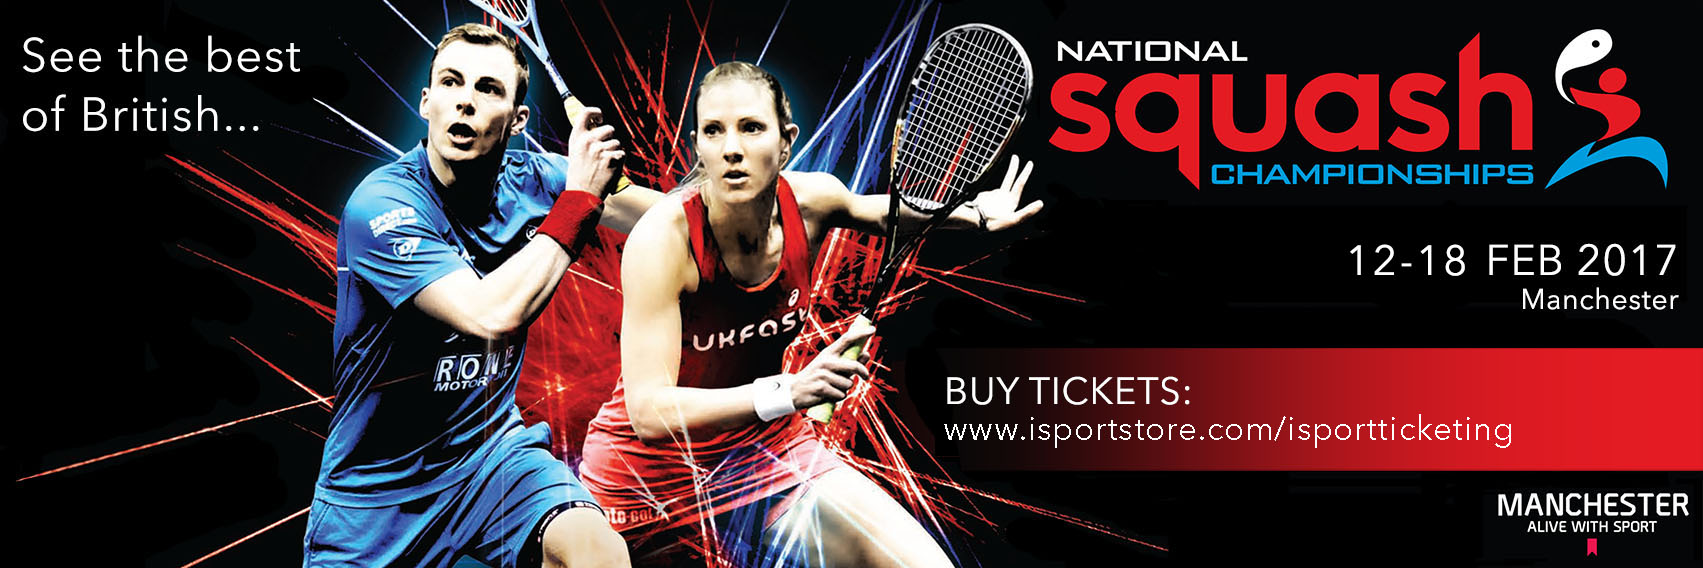 Buy tickets from iSPORTstore